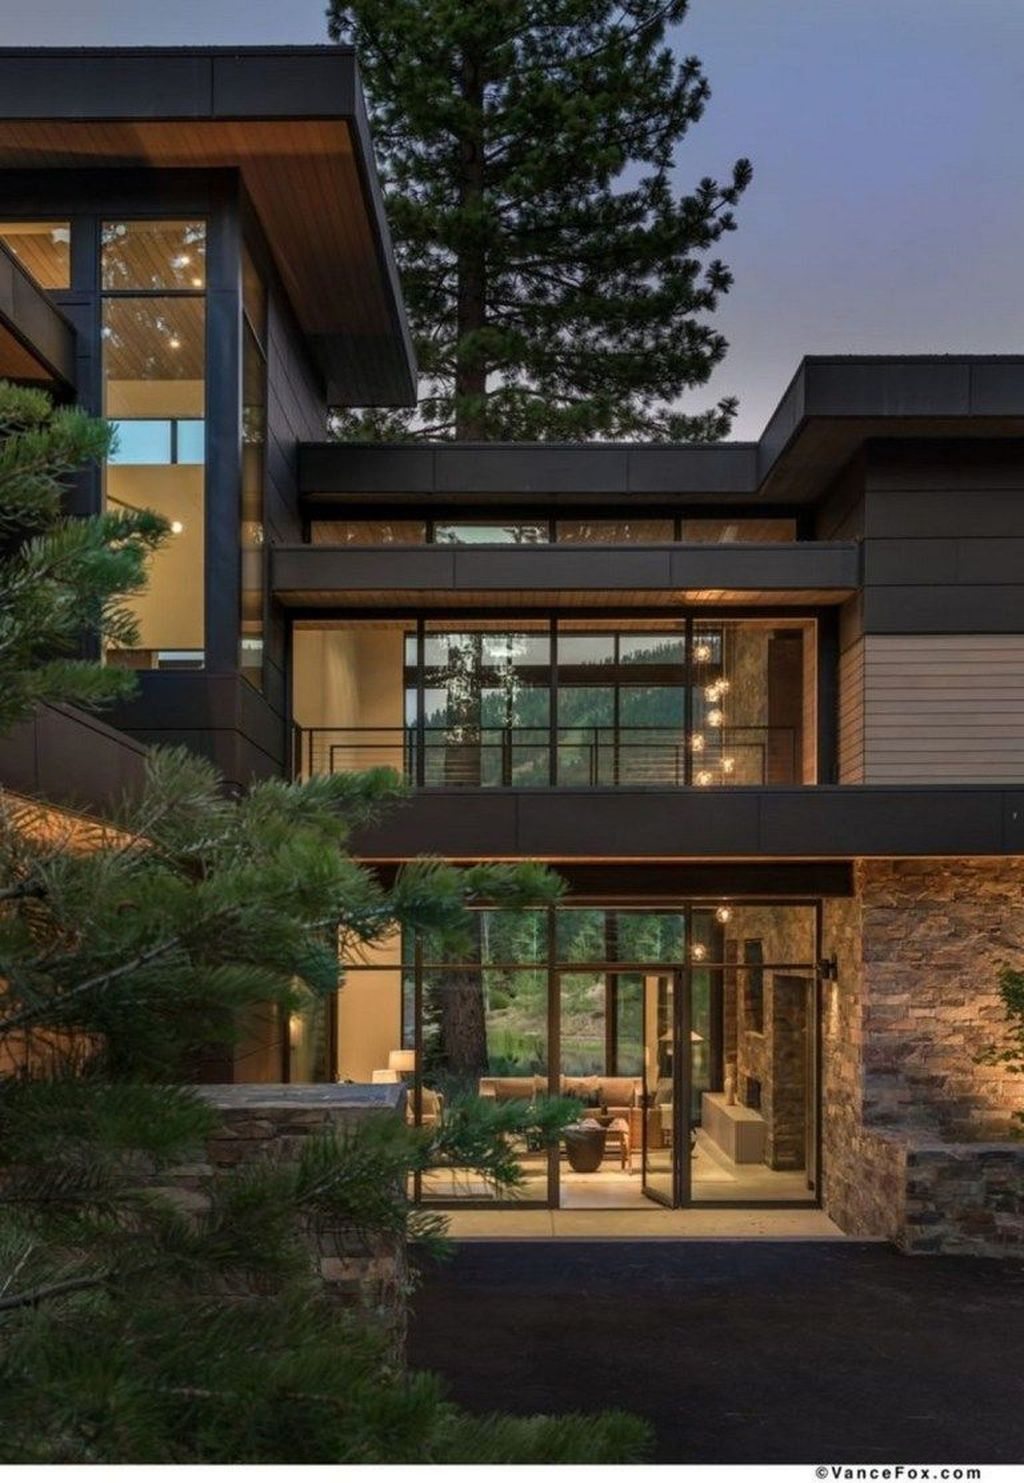 34 Inspiring Wooden House Design Ideas For Interior And Exterior Design Wooden House Design Modern Architecture Building Contemporary House Exterior